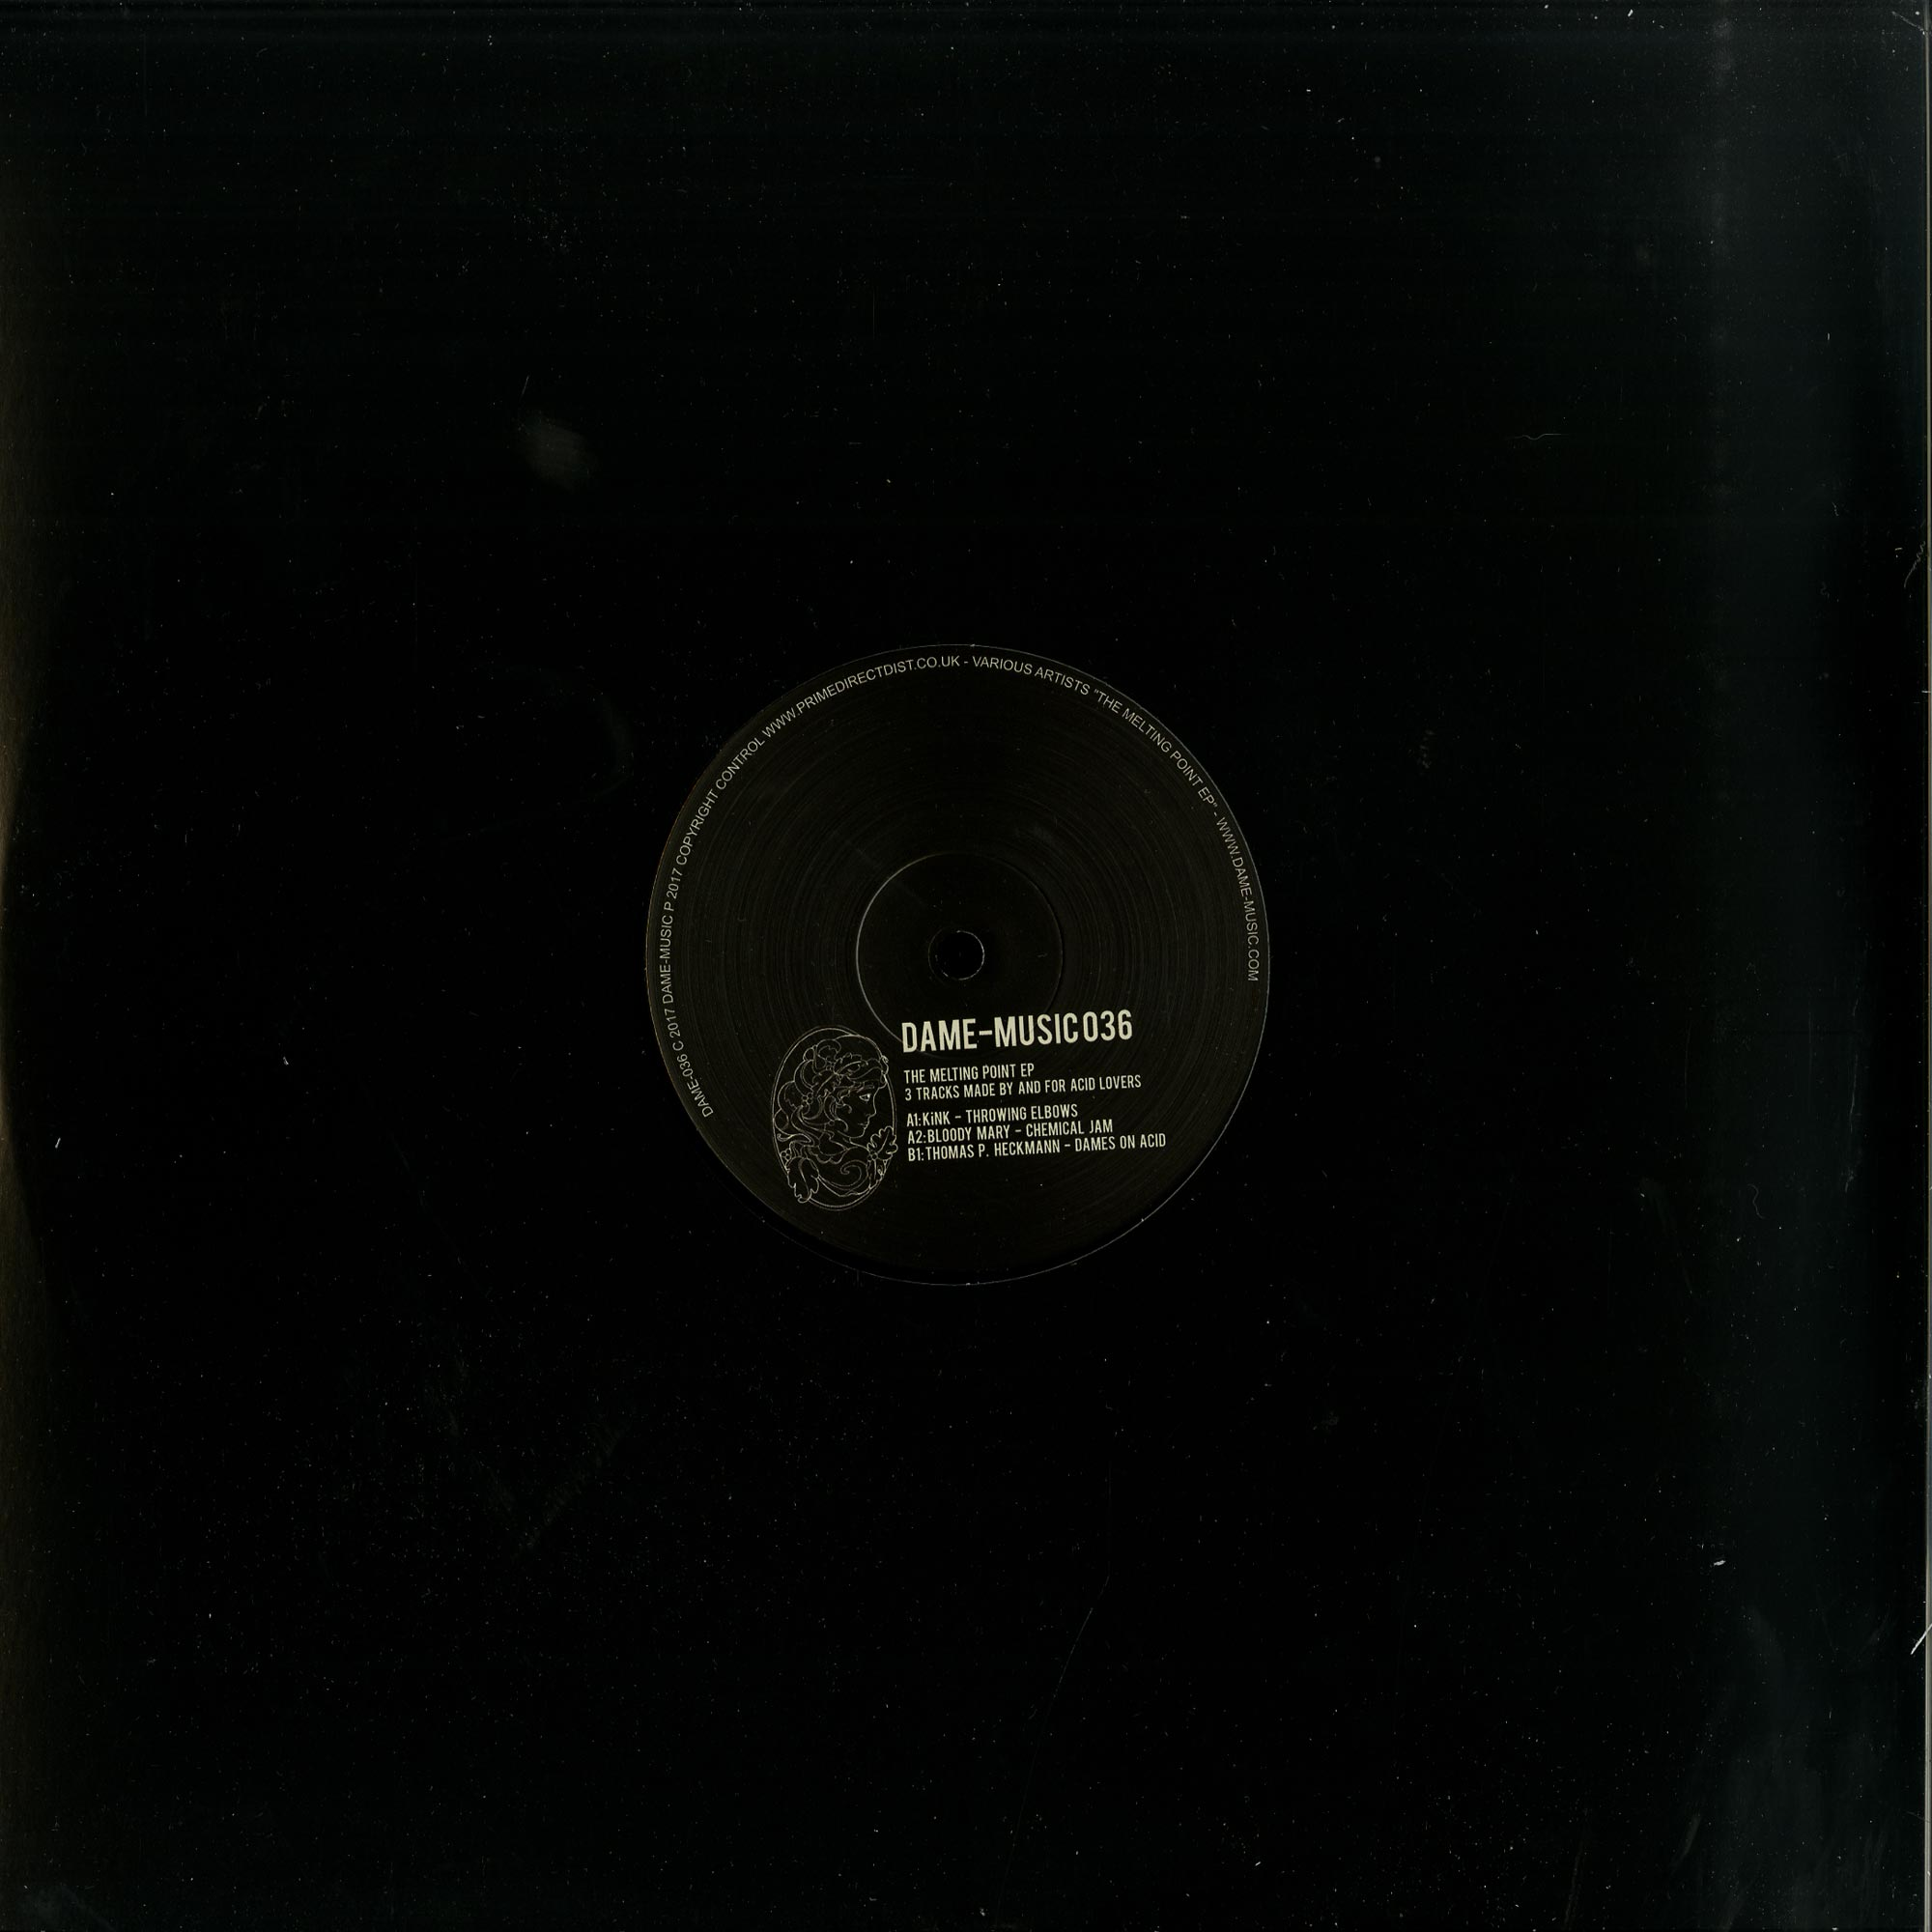 KiNK, Bloody Mary & Thomas P. Heckmann - THE MELTING POINT EP